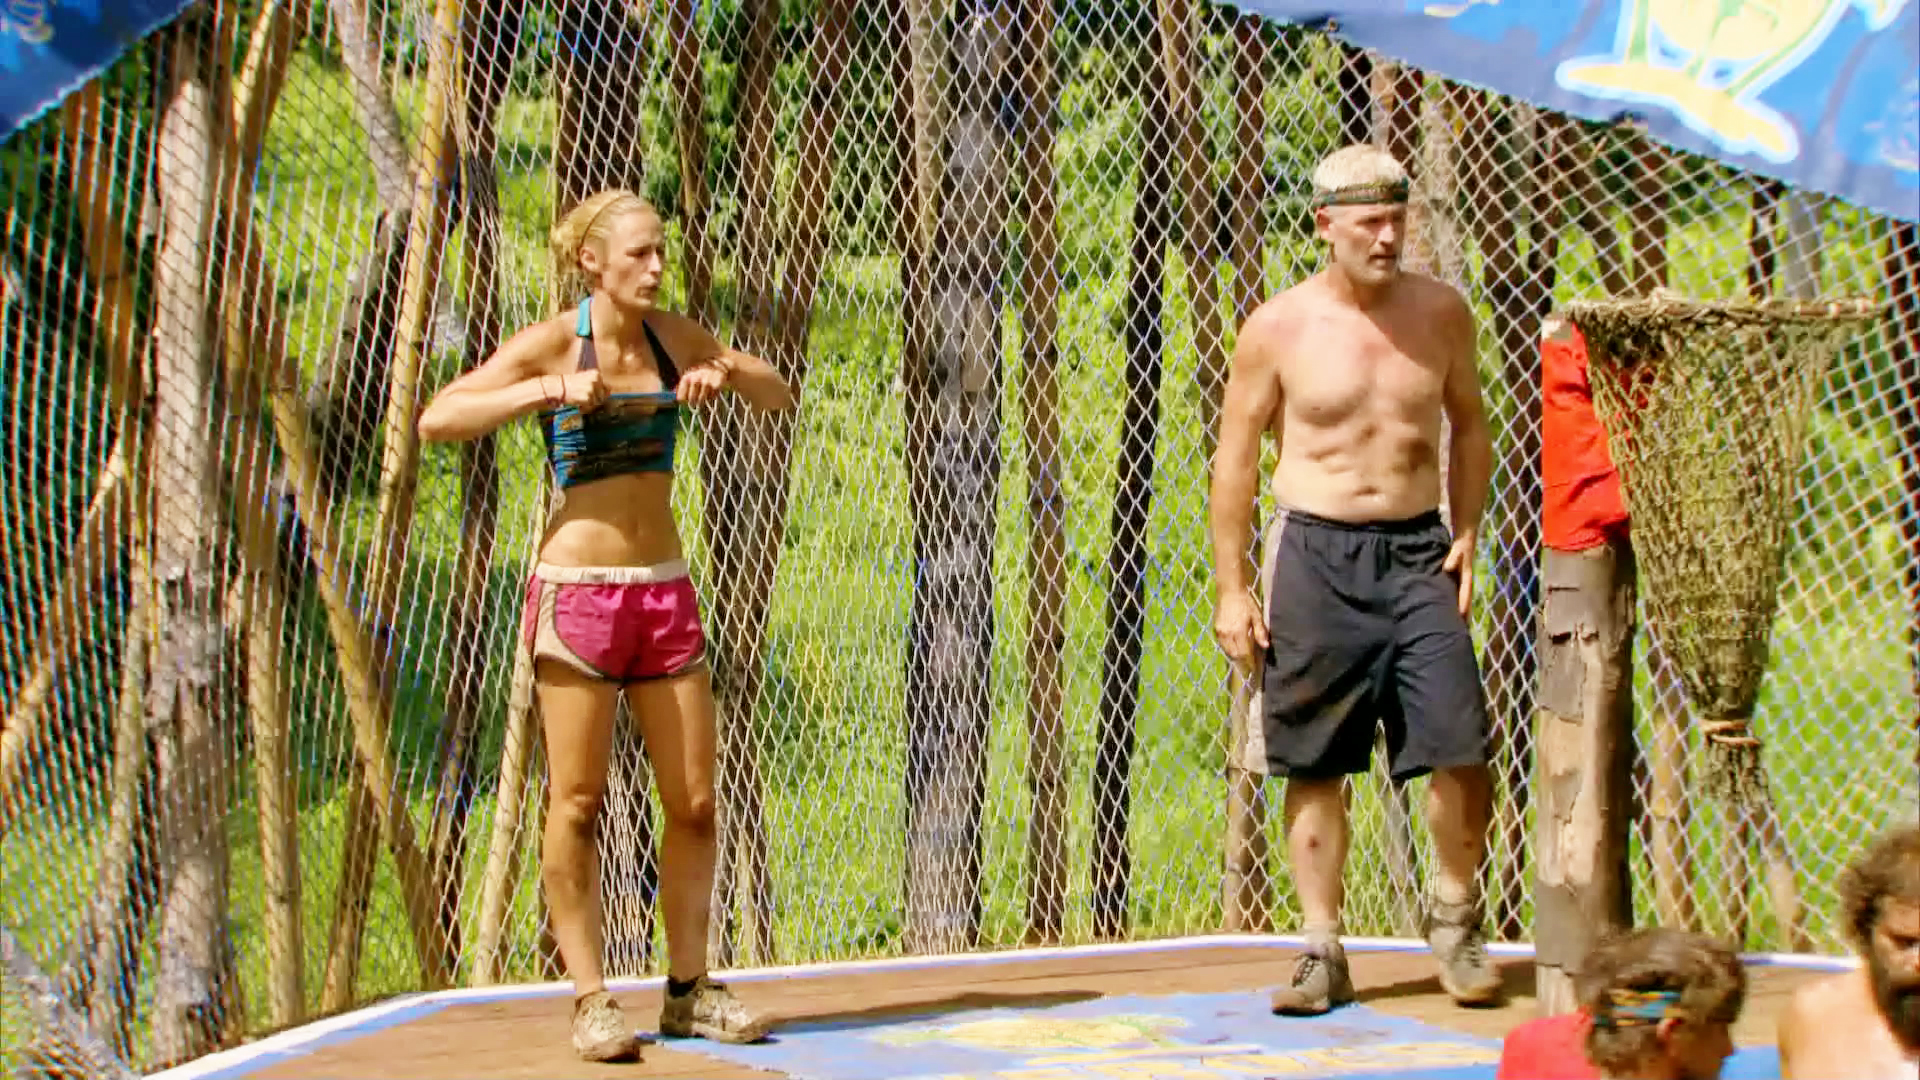 Watch Survivor Season 20 Episode 5: Knights of the Round Table - Full show  on CBS All Access